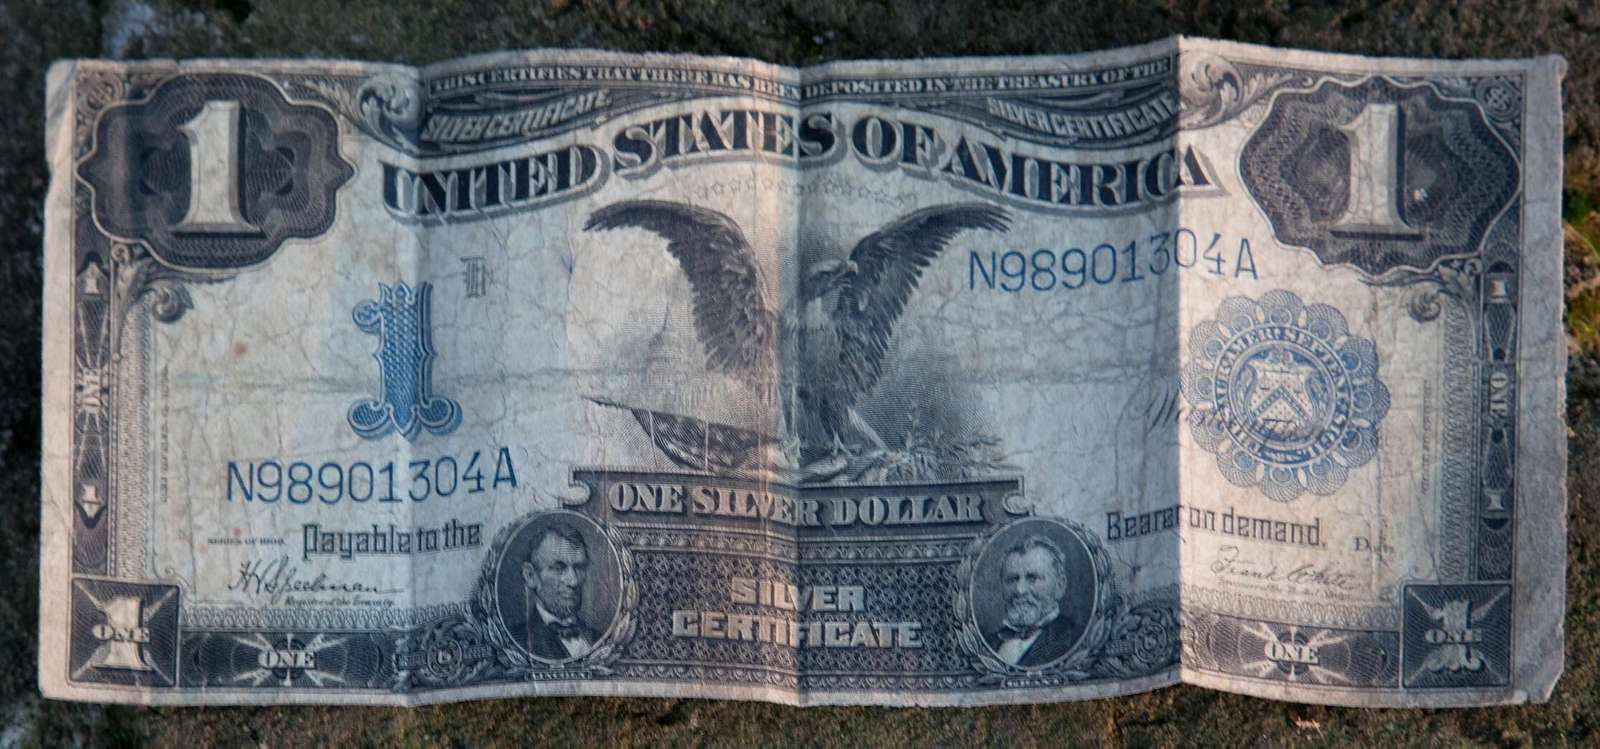 A 1902 silver certificate offered by Frances Benjamin Johnston, renowned American photographer, found under a name plate on Johnston's camera tripod in Cordova, Alabama